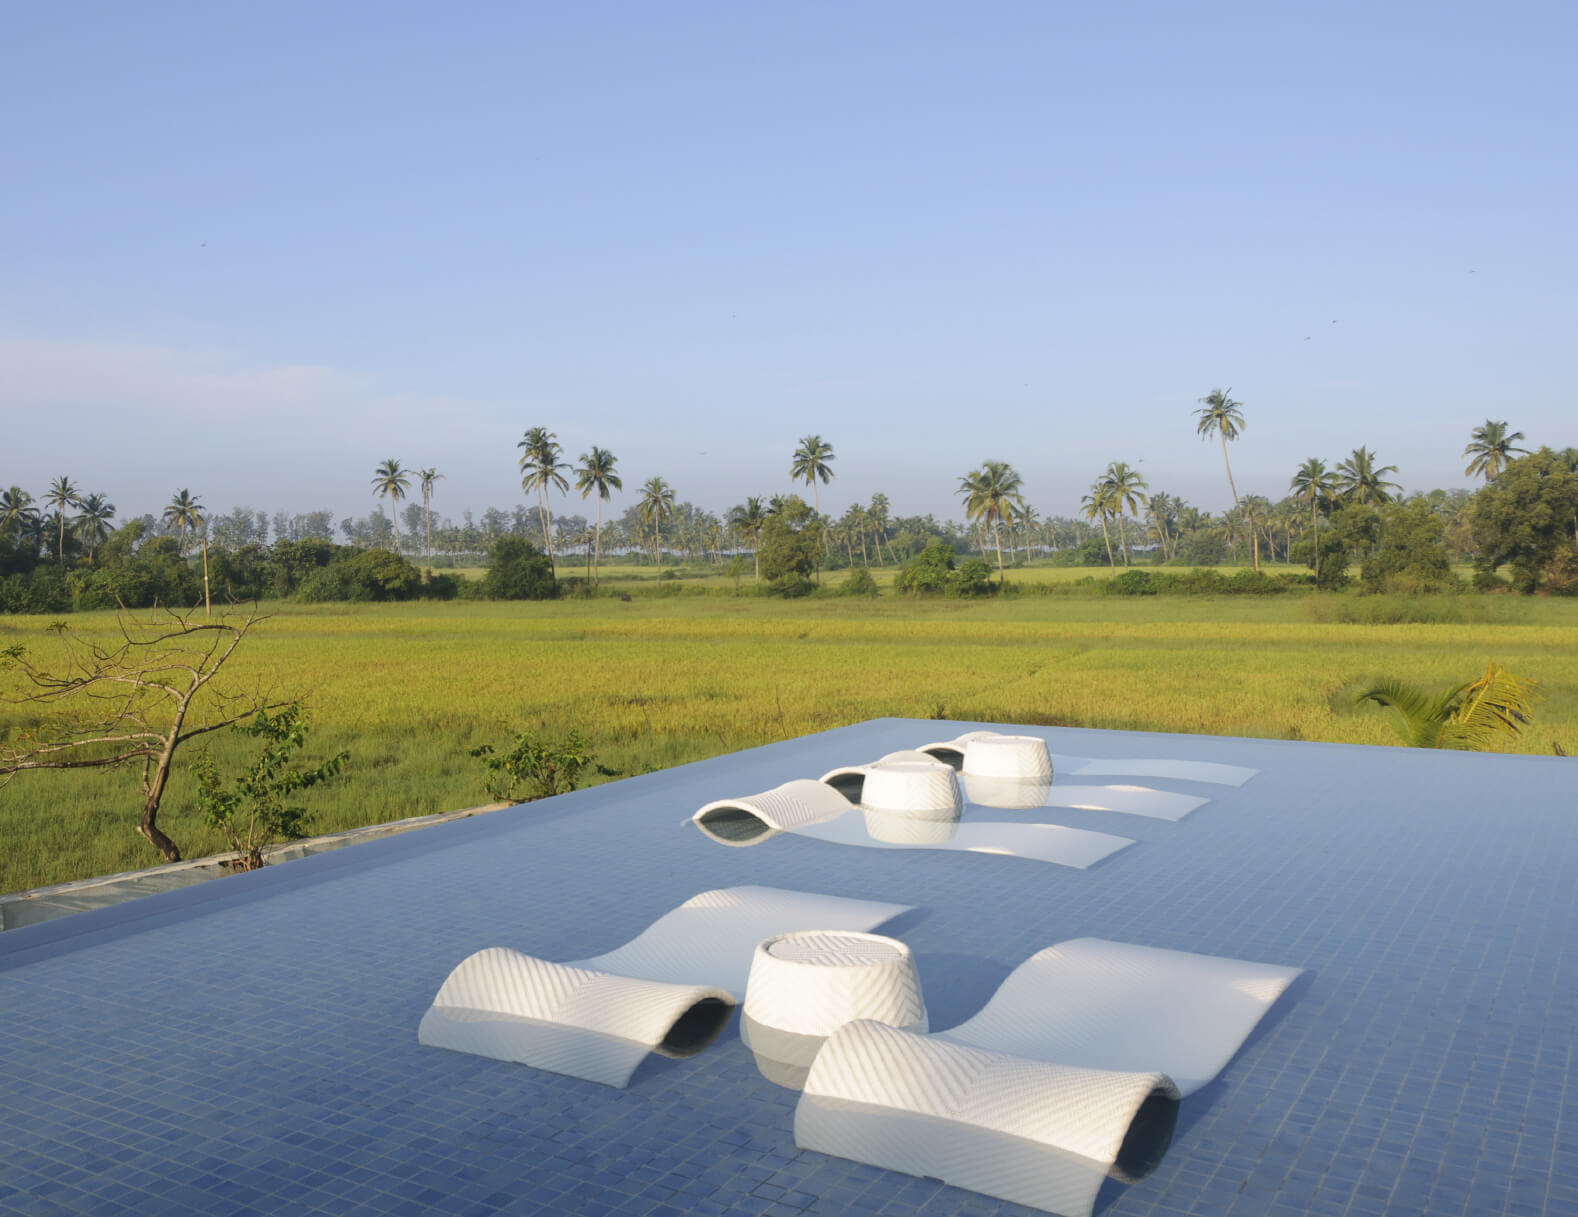 This example of a shallower pool has rolling, modern style lounge chairs, perfect for sunbathing while staying cool. The pool overlooks a meadow.